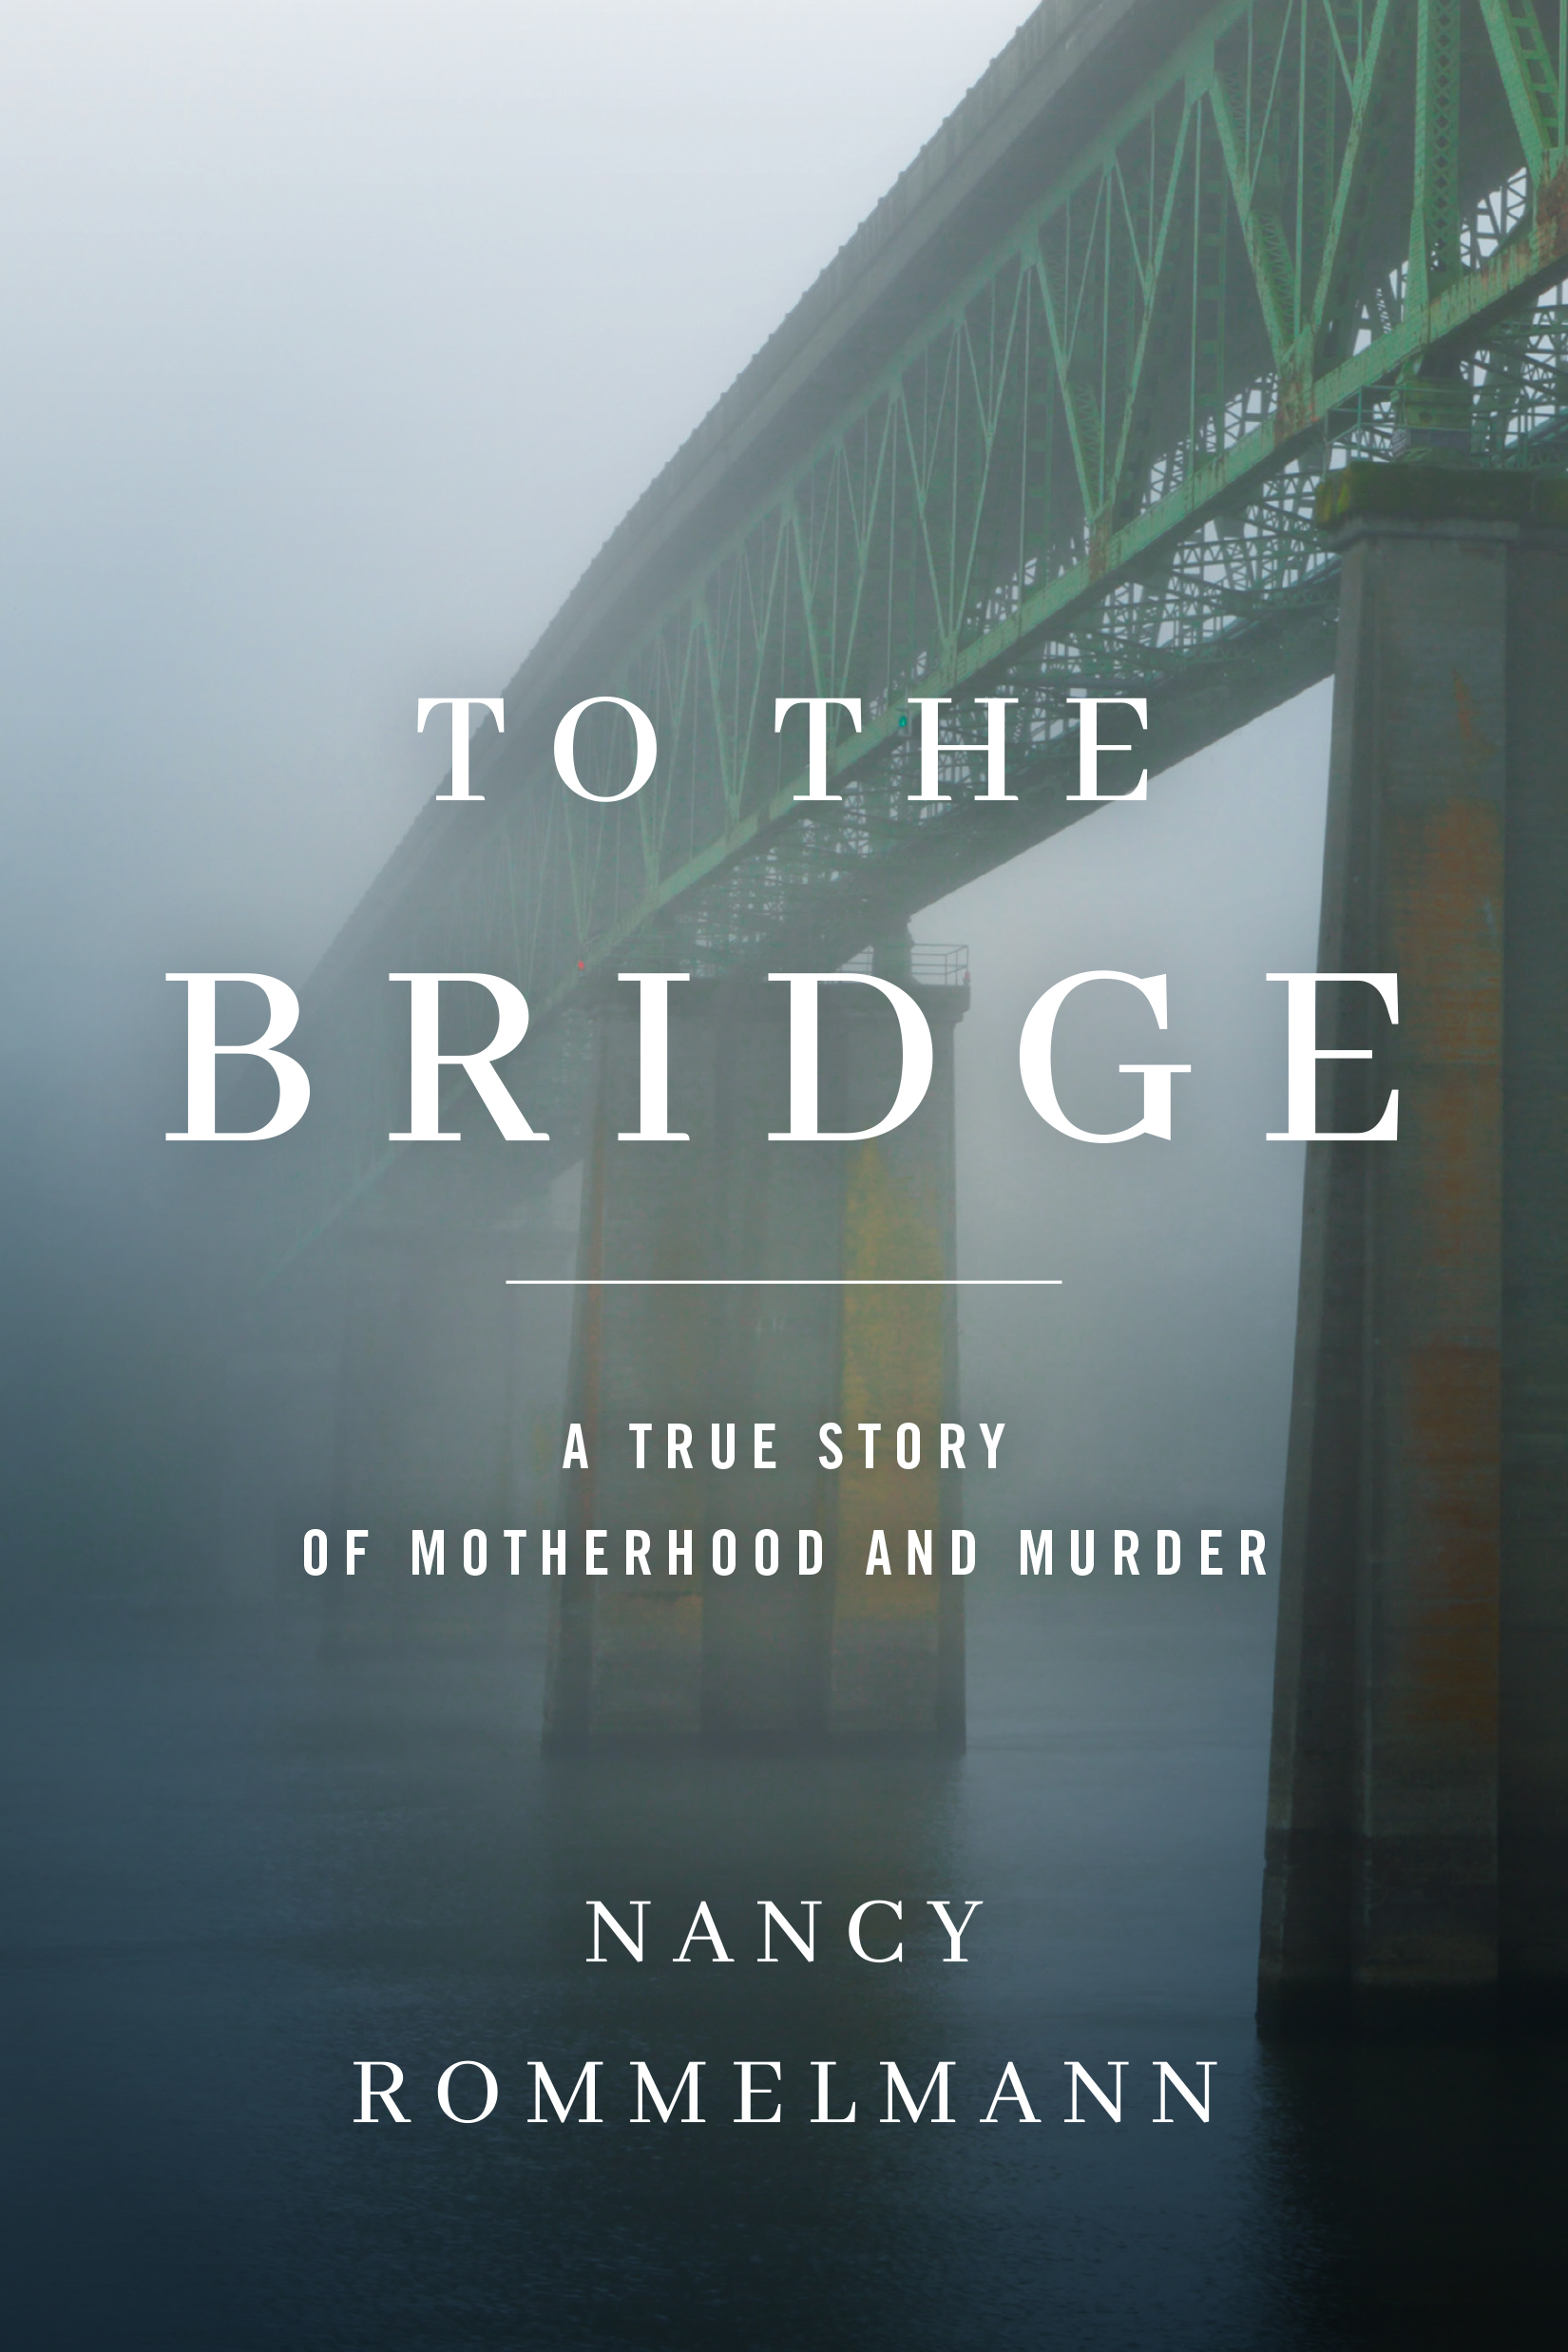 Book Launch: To the Bridge: A True Story of Motherhood and Murder by Nancy Rommelmann